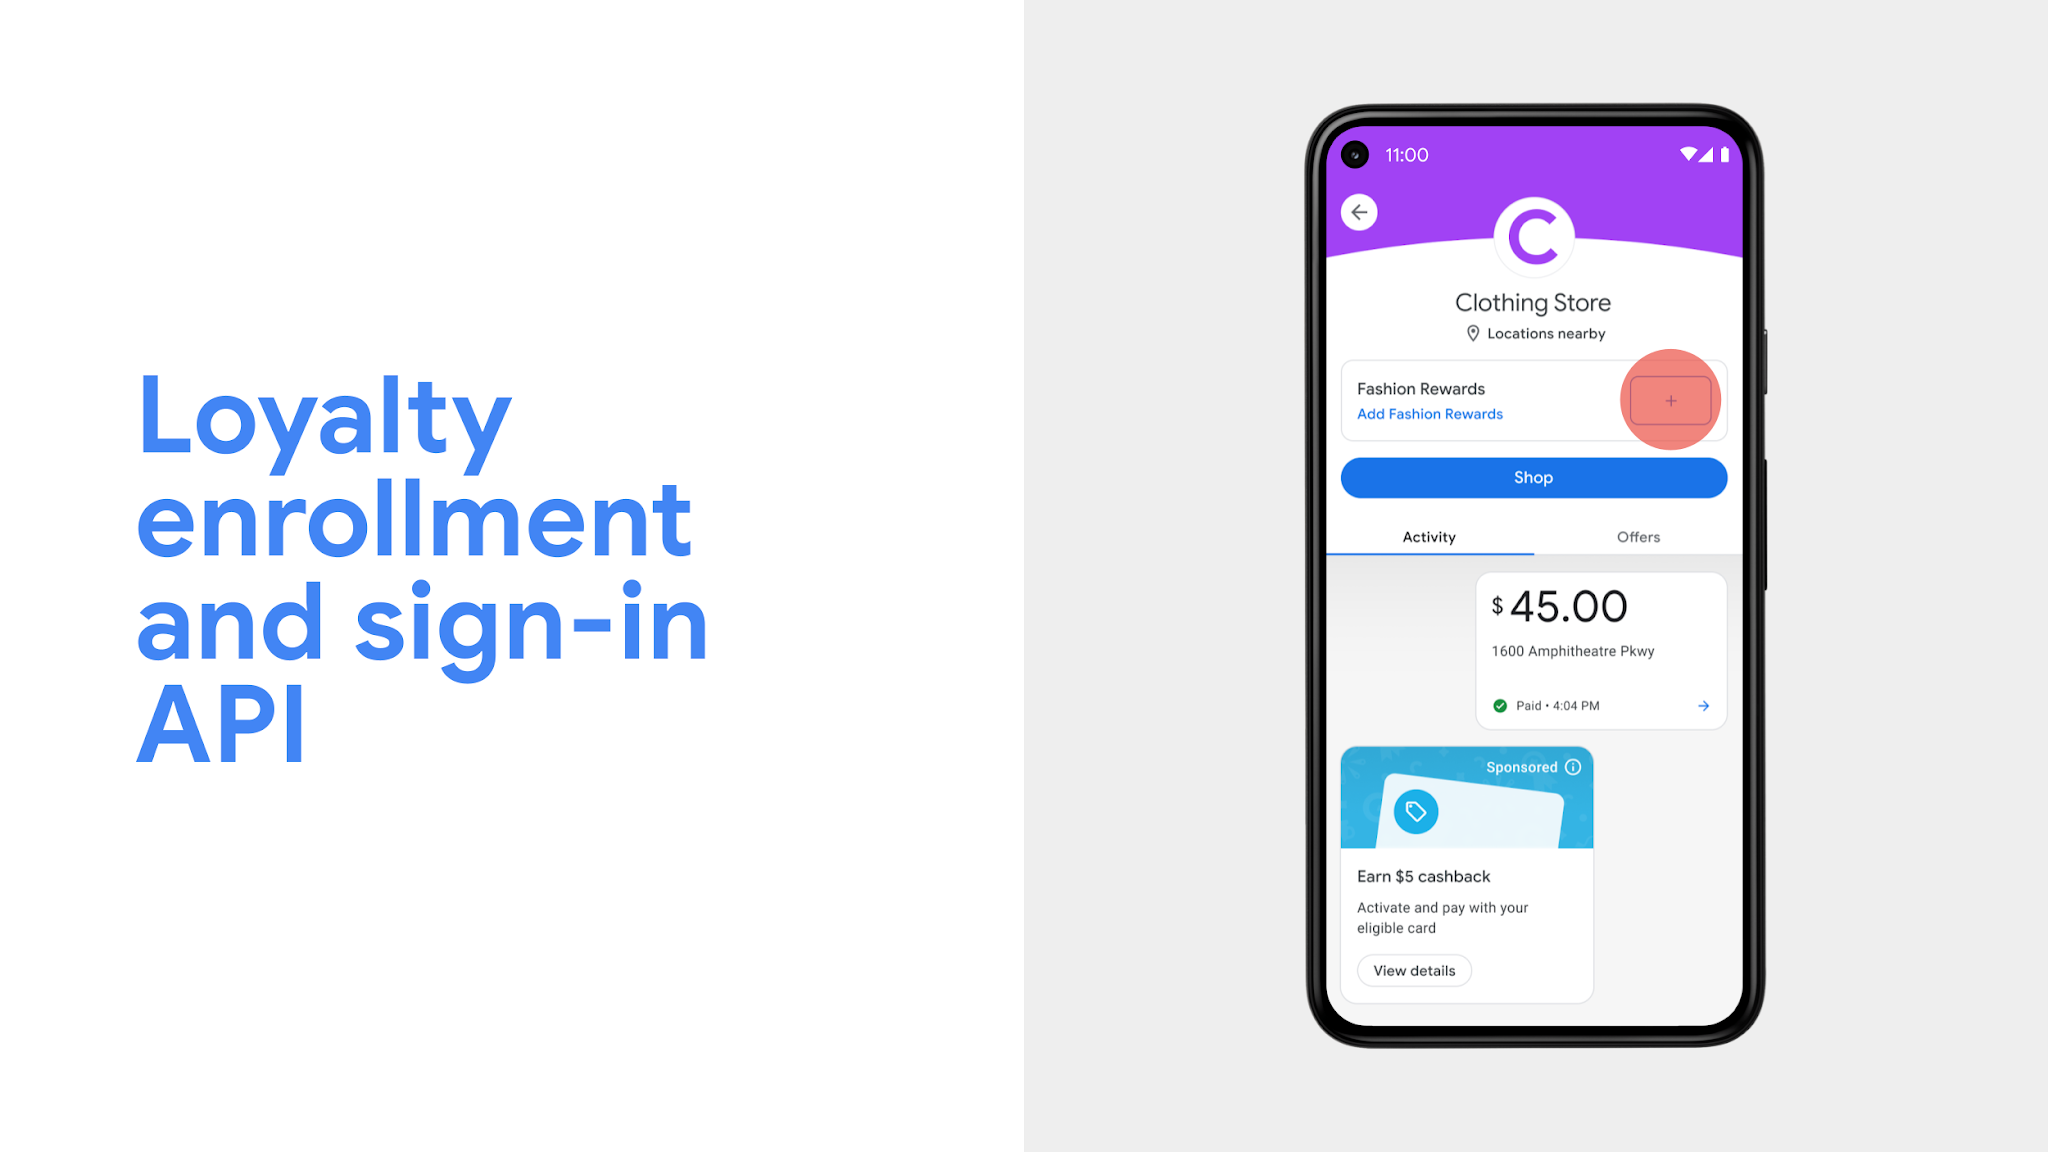 Loyalty enrollment and sign-in API